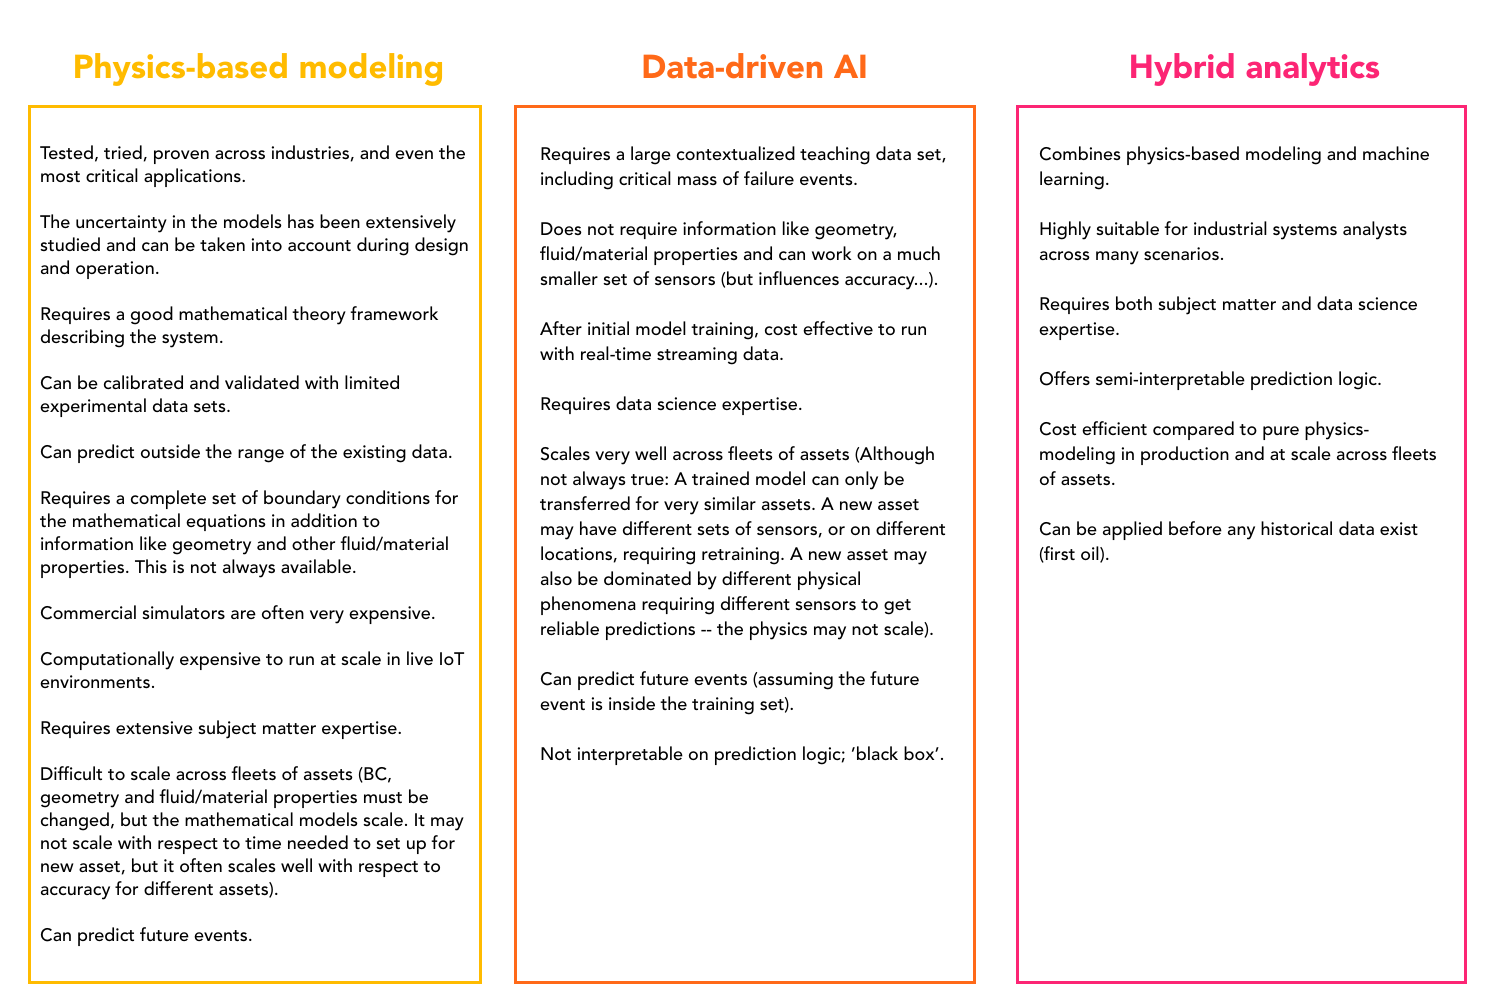 Physics and AI hybrid delivers working AI for industry